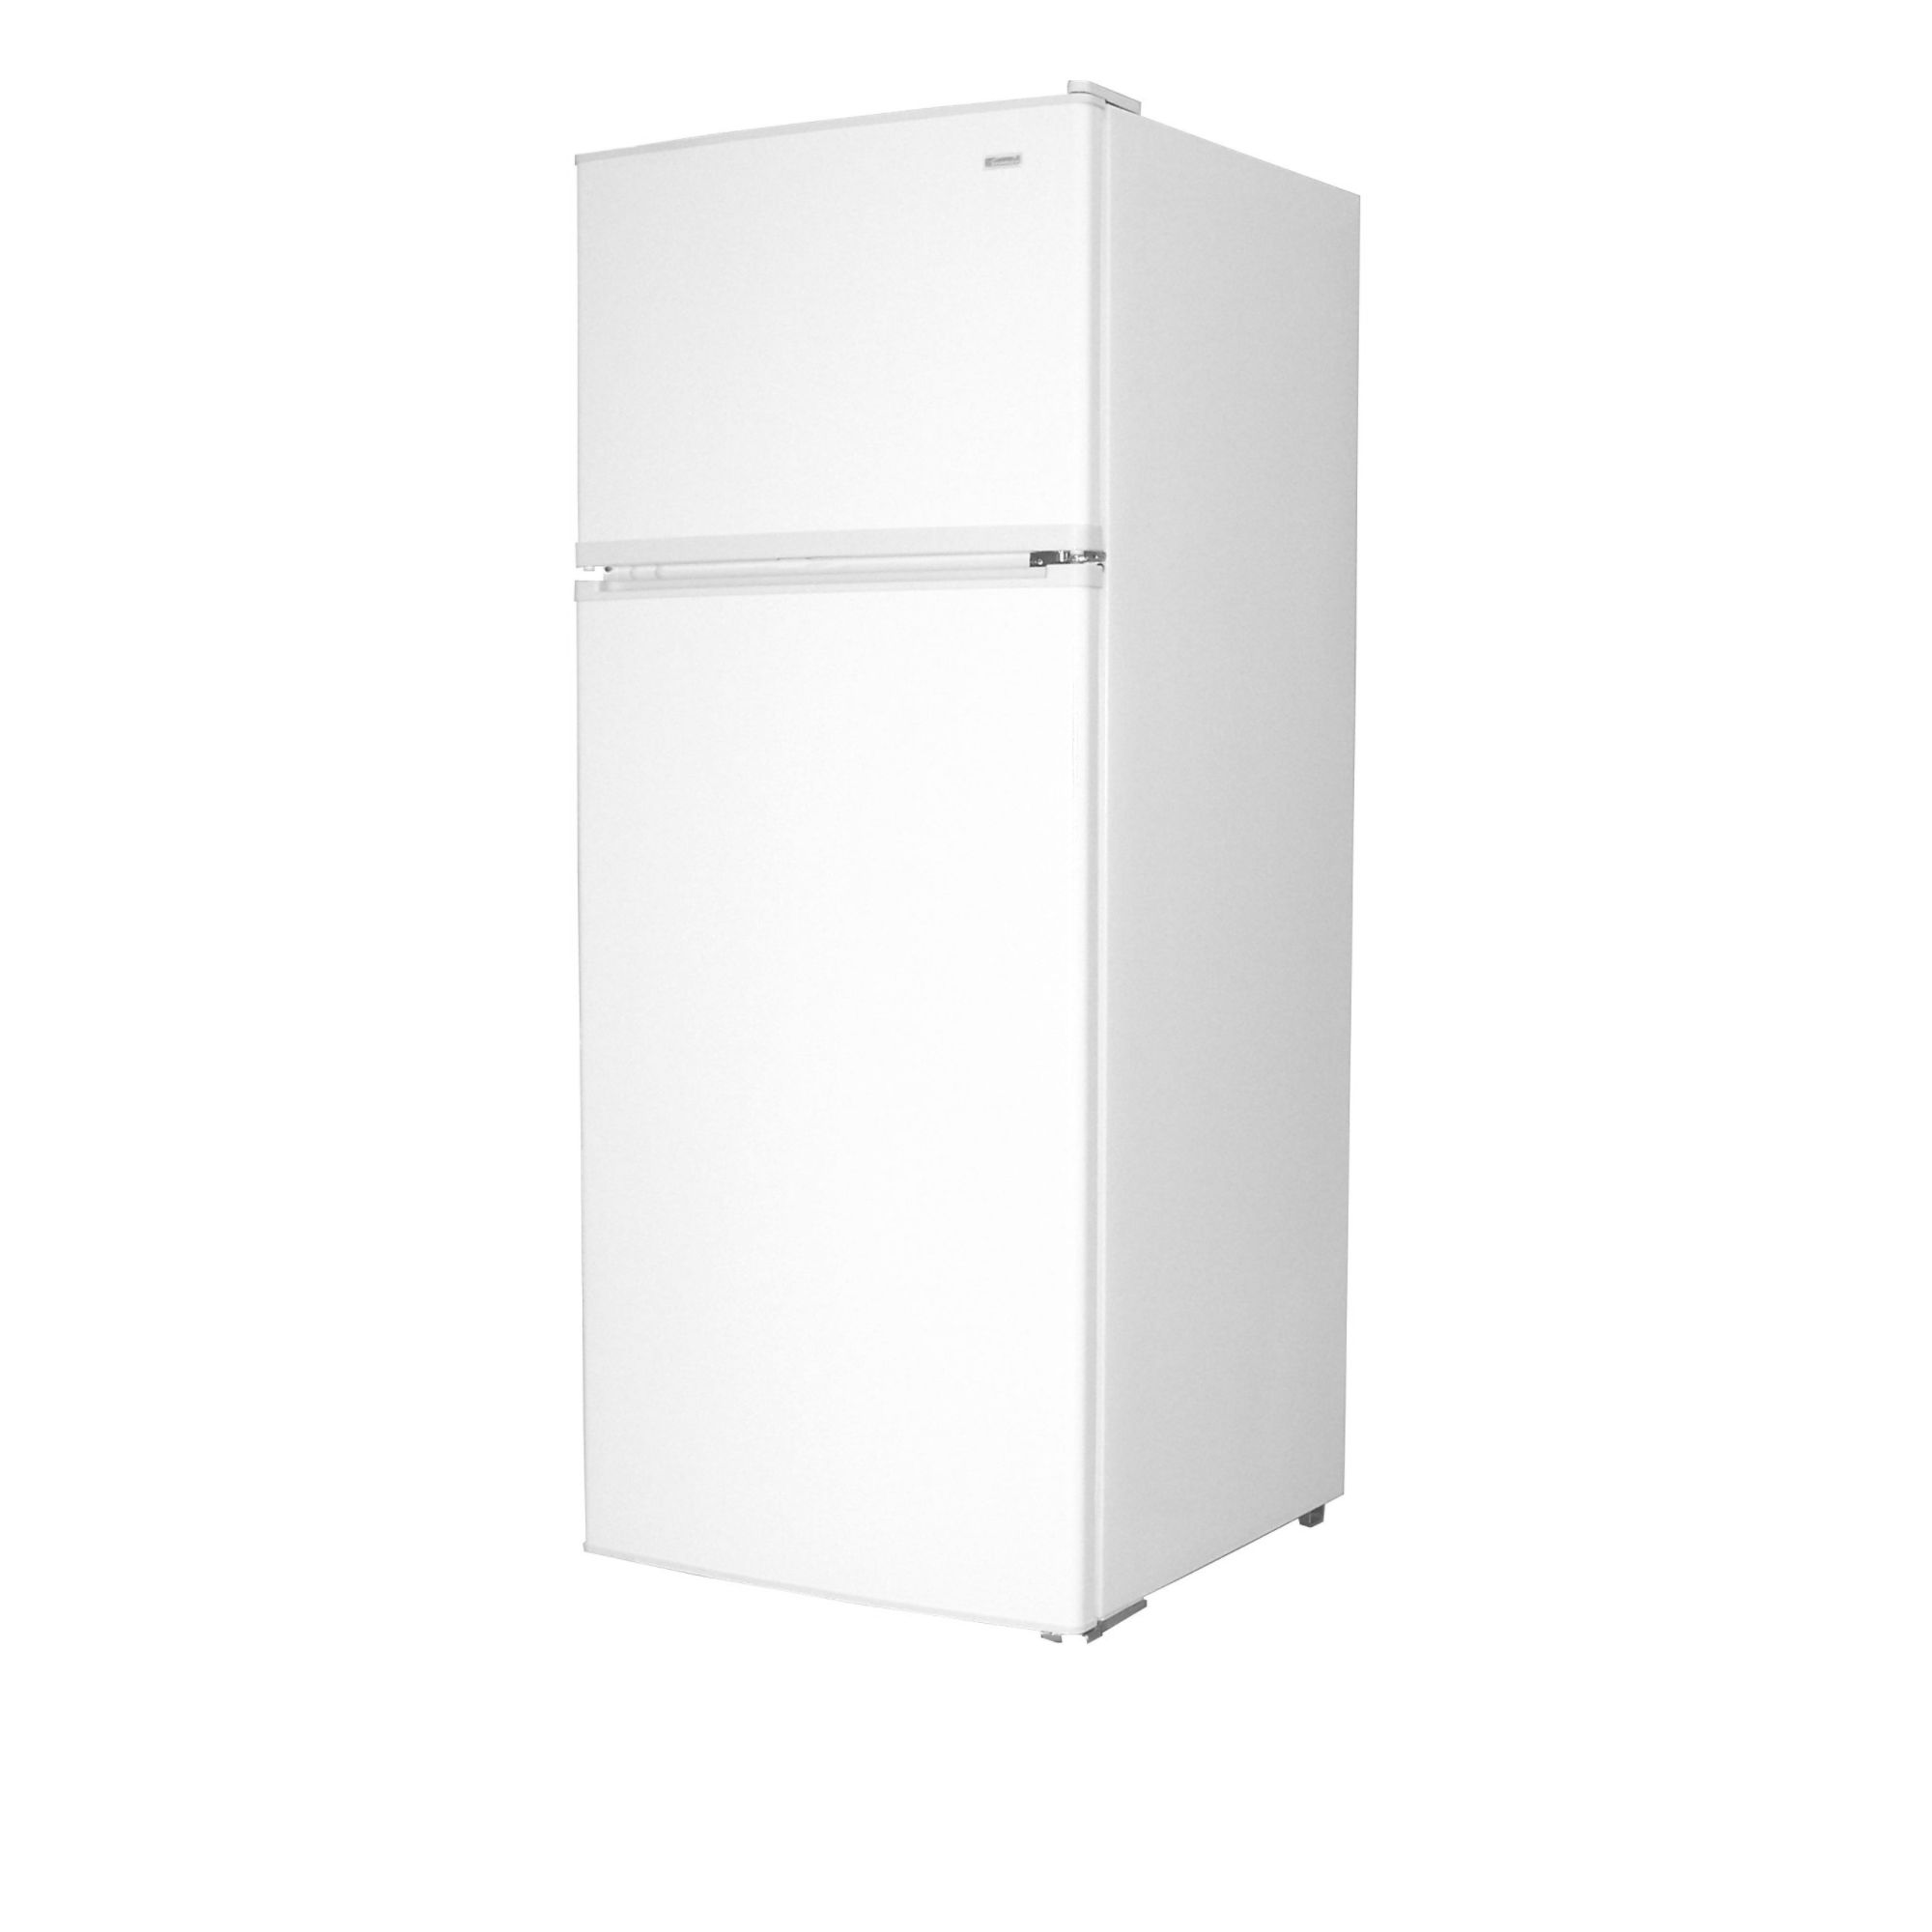 Kmart Freezer Kenmore Top Freezer Refrigerator 10 3 Cu Ft 6204 Sears